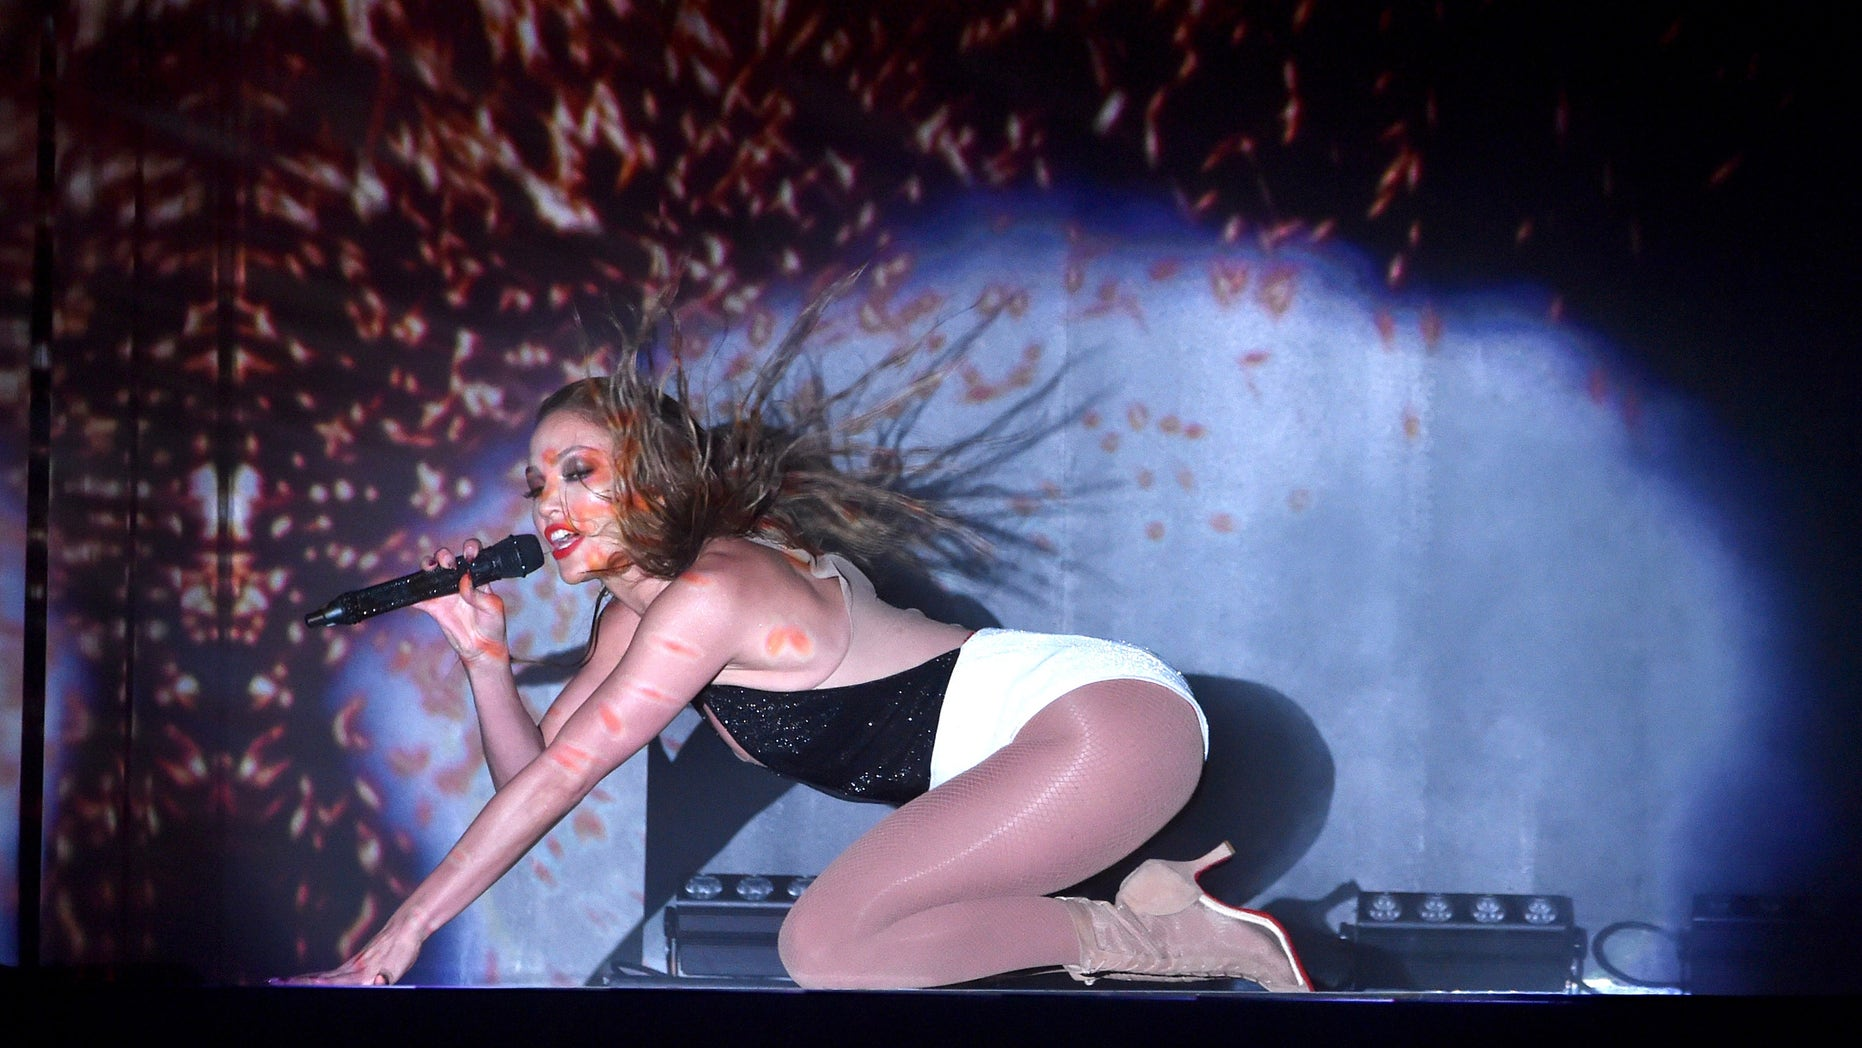 Jennifer Lopez at the 2014 American Music Awards at Nokia Theatre L.A. Live on November 23, 2014.